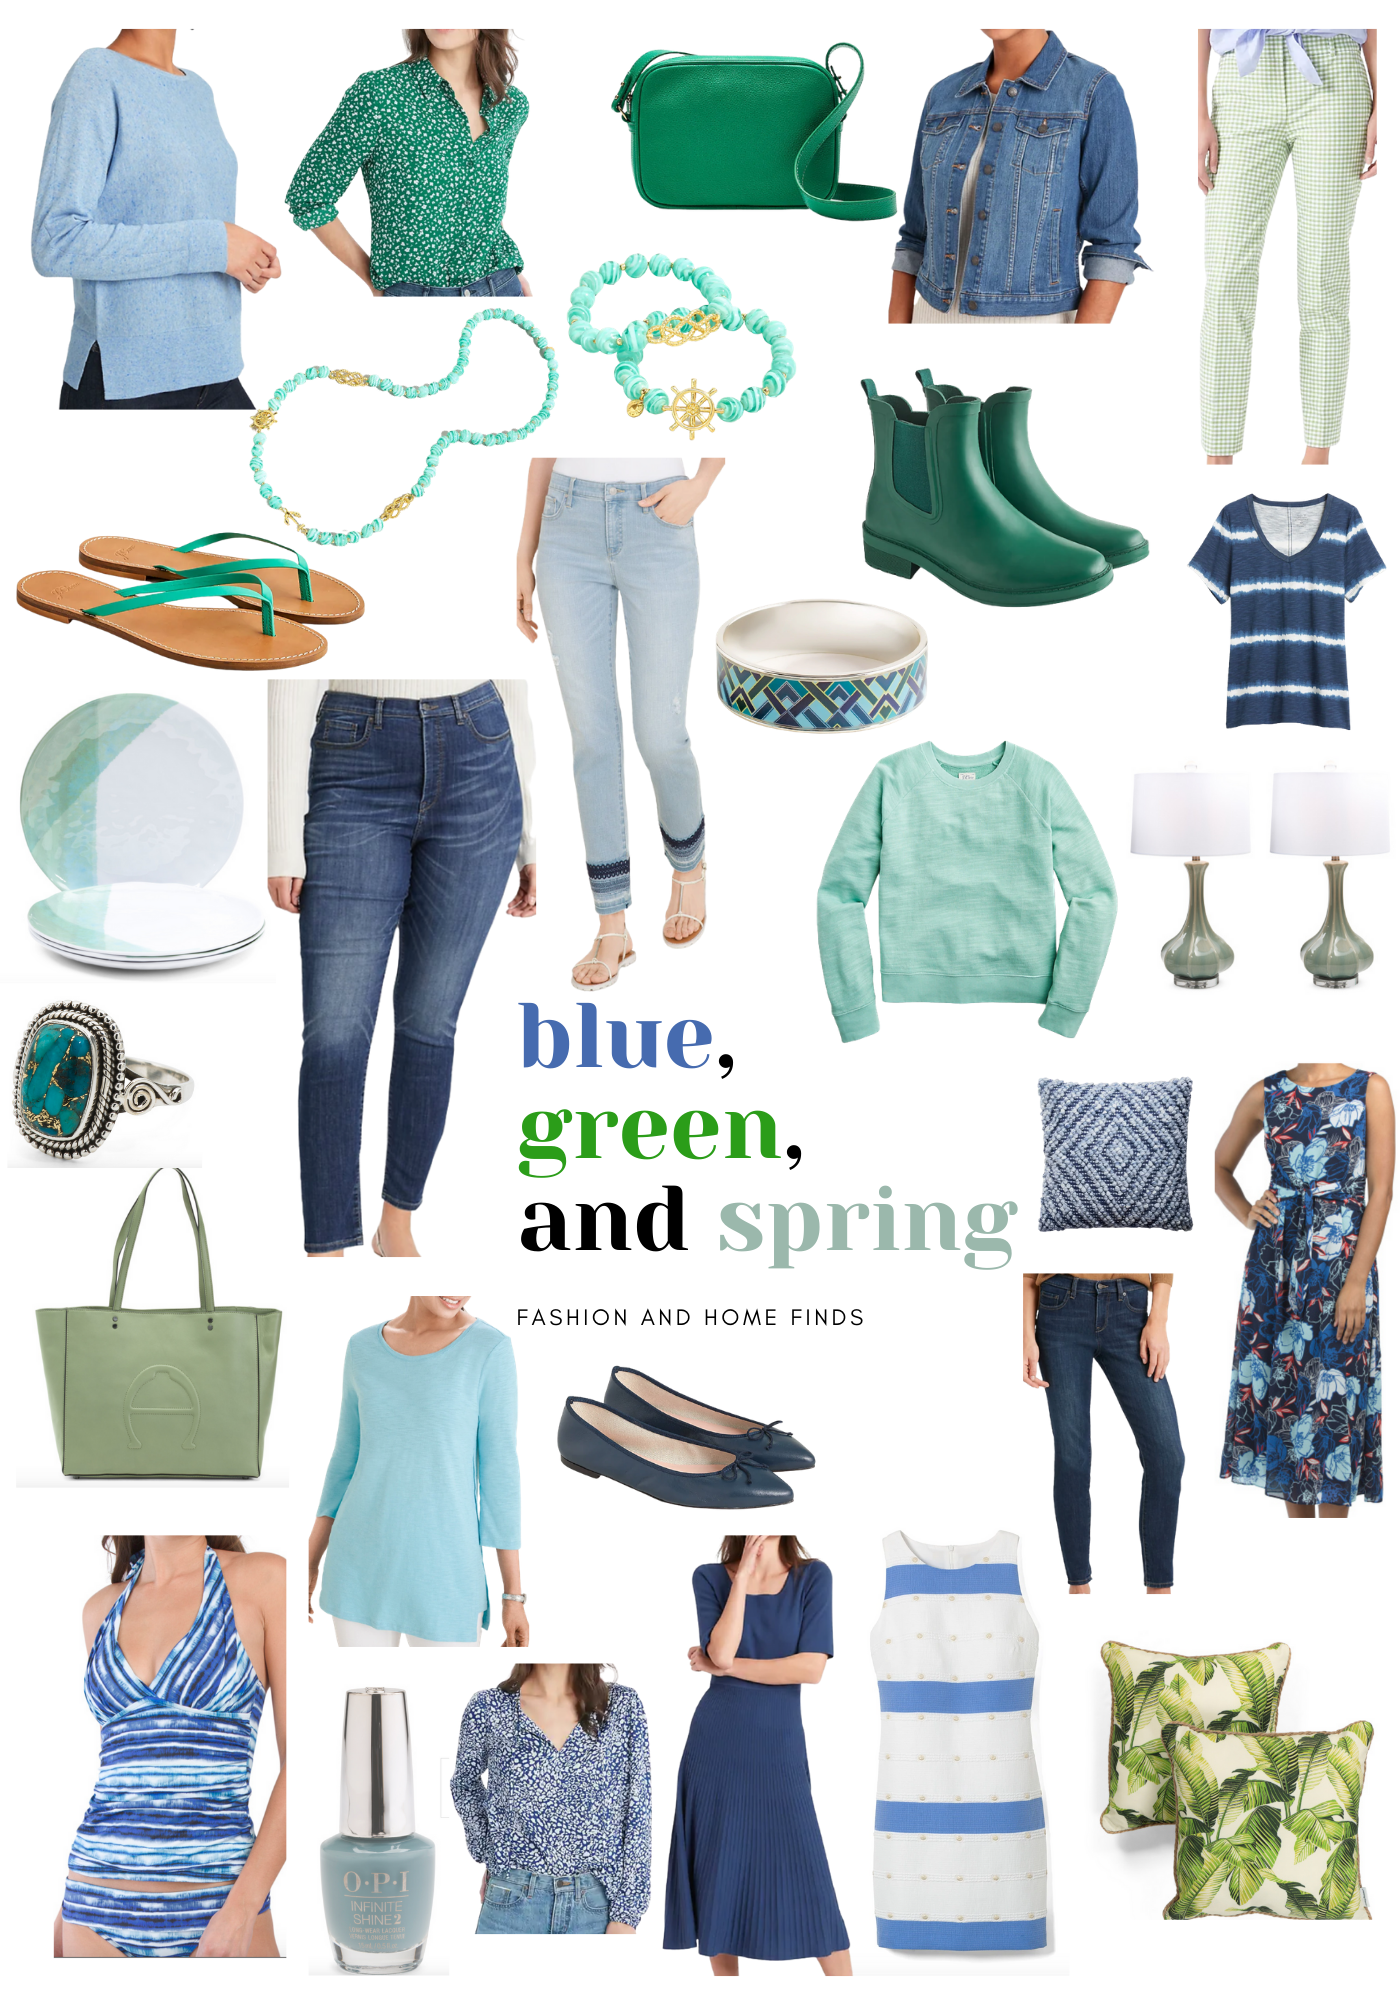 Fashion over 50: Blue Green and Spring